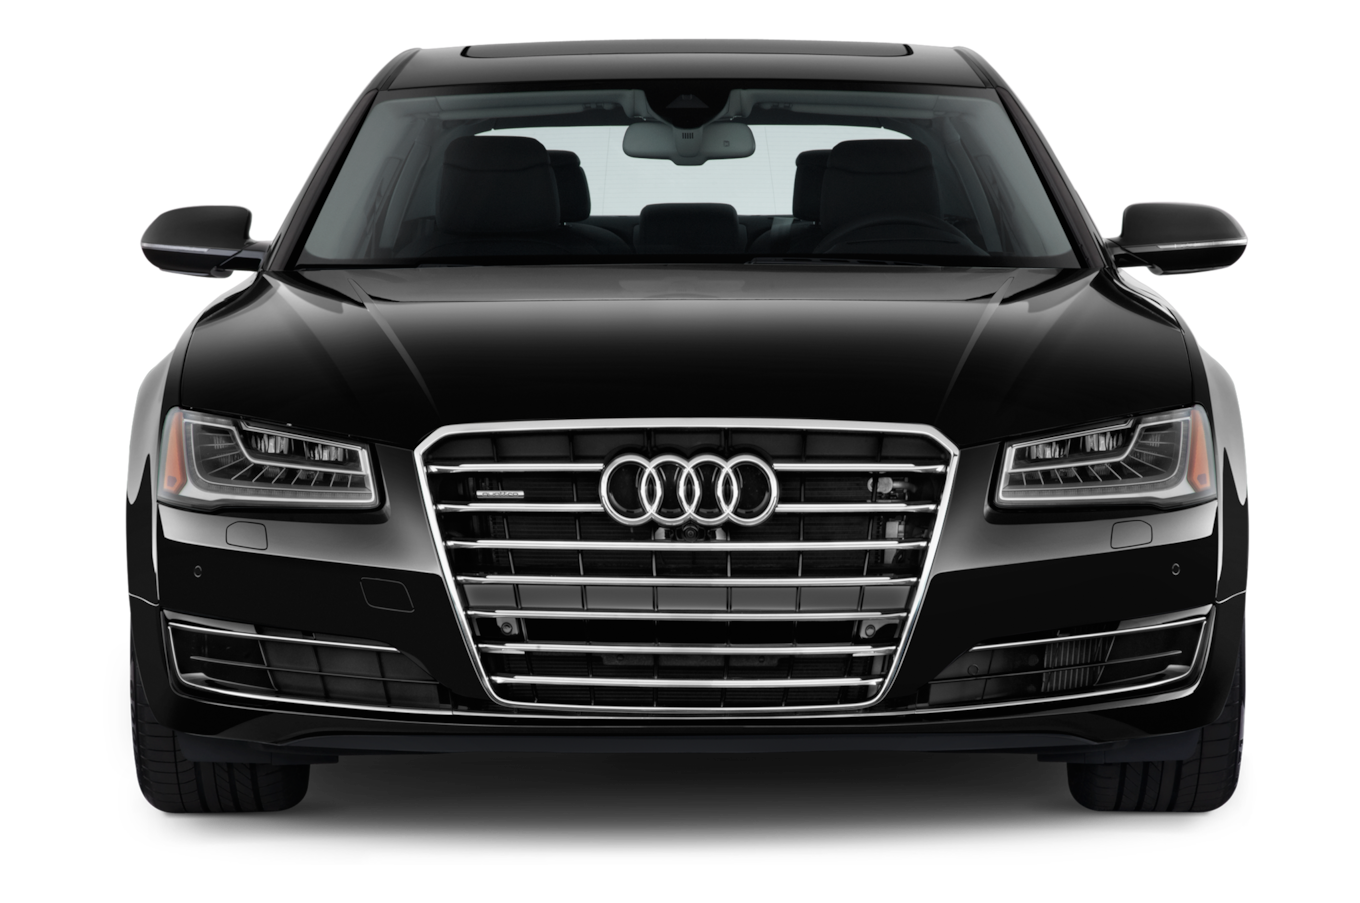 "<span style=""font-weight: bold;"">AUDI A8 LONG</span><br>"